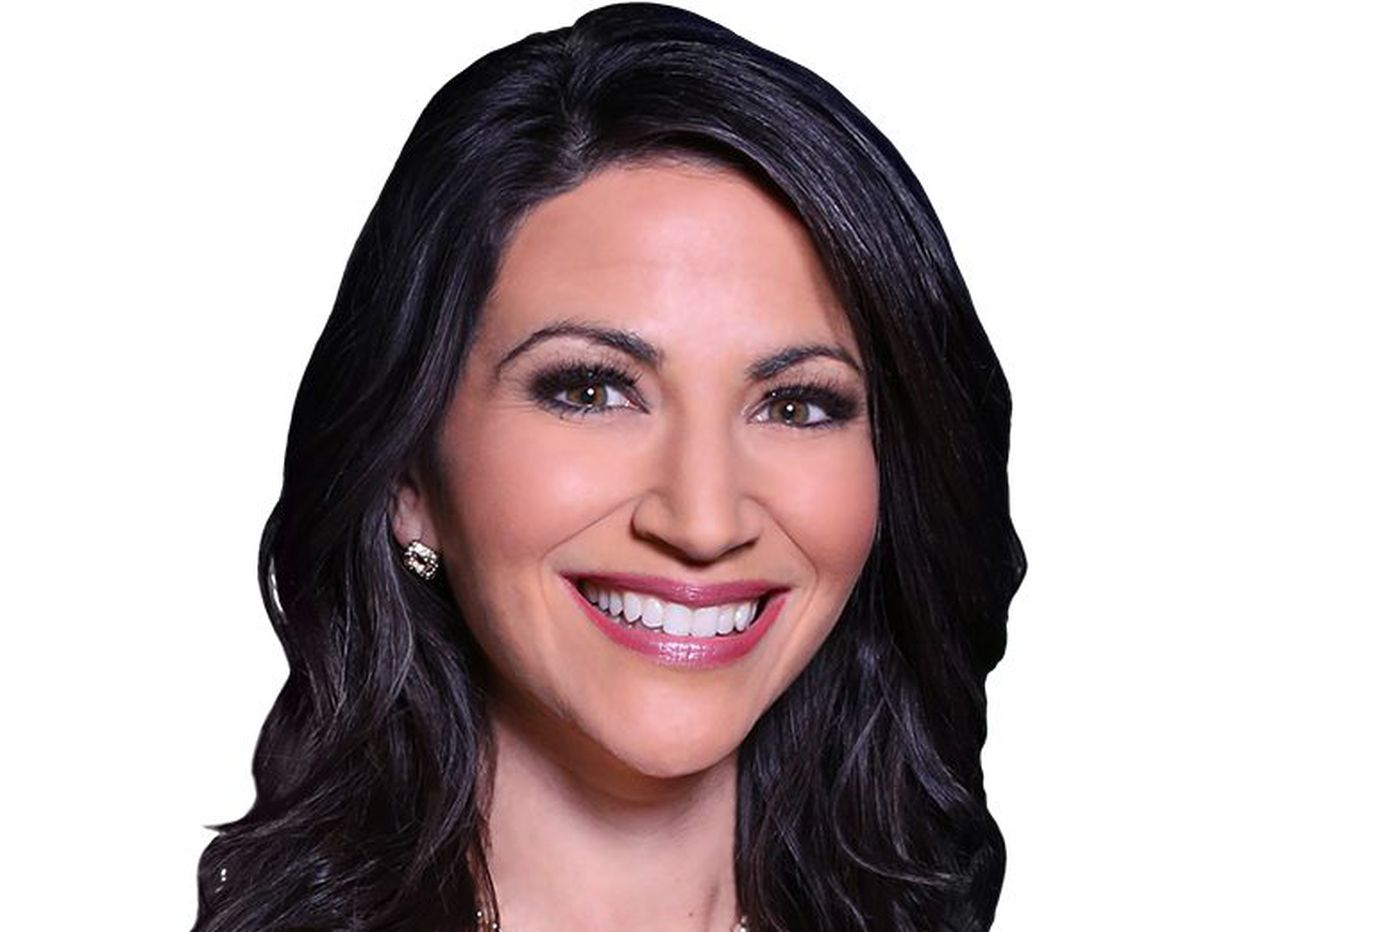 NBC10 adds Lucy Bustamante as morning news anchor, breaking news anchor at Telemundo62